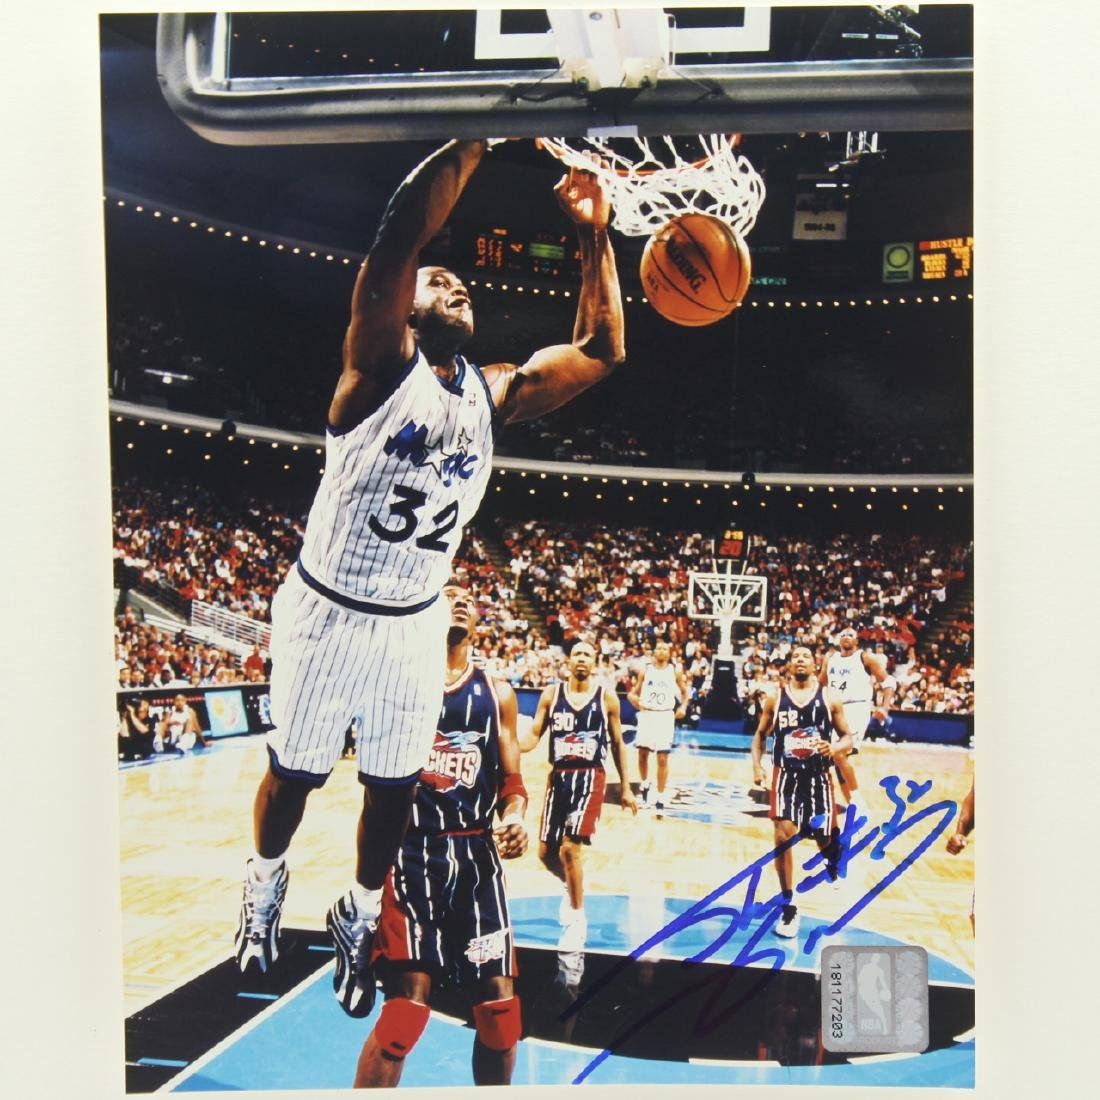 Photos, Shaquille O'Neal, Autographed, Incl. CoA - 3